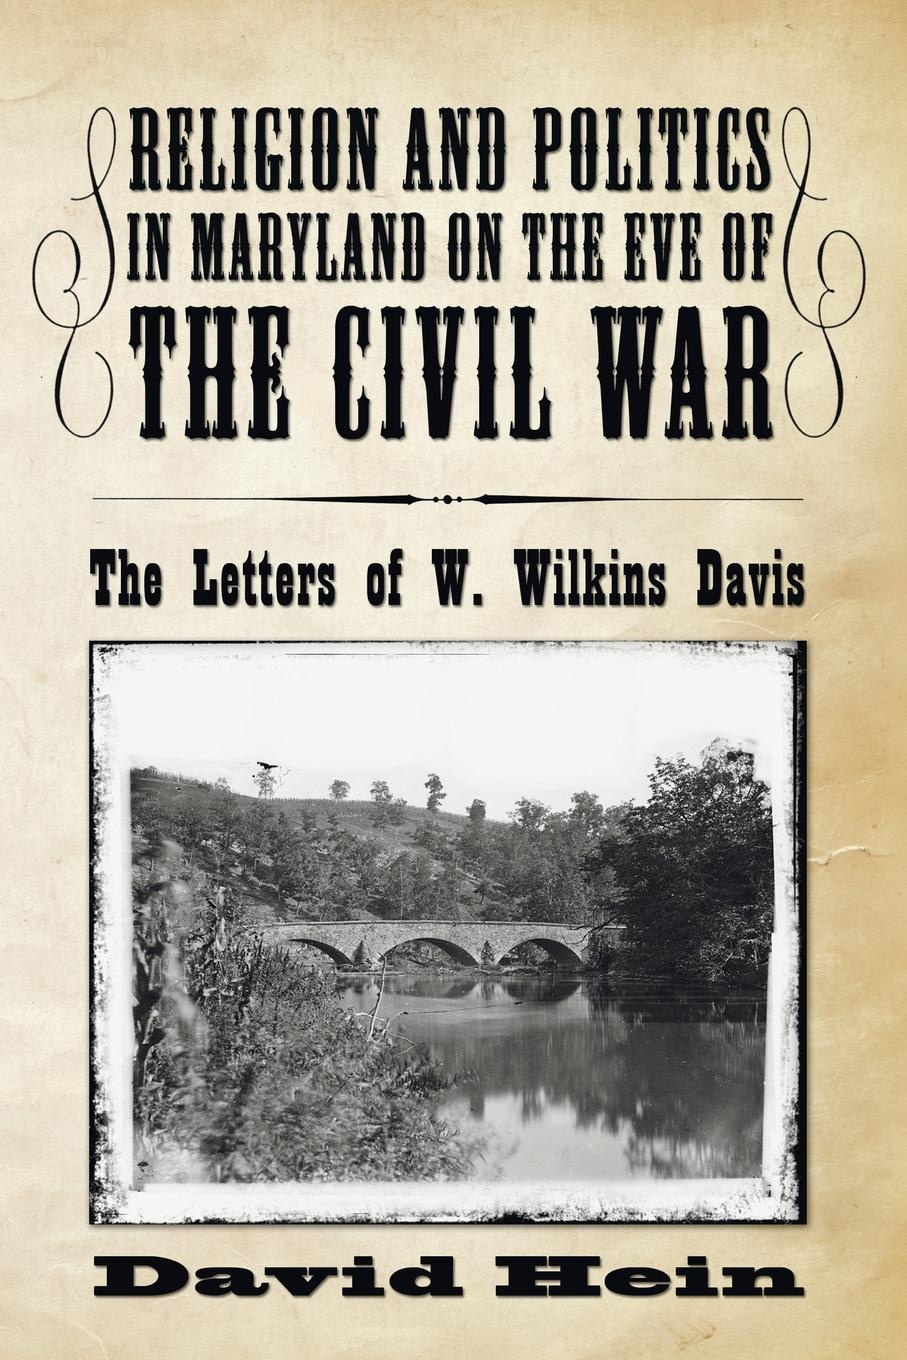 Religion and Politics in Maryland on the Eve of the Civil War. The Letters of W. Wilkins Davis. David Hein